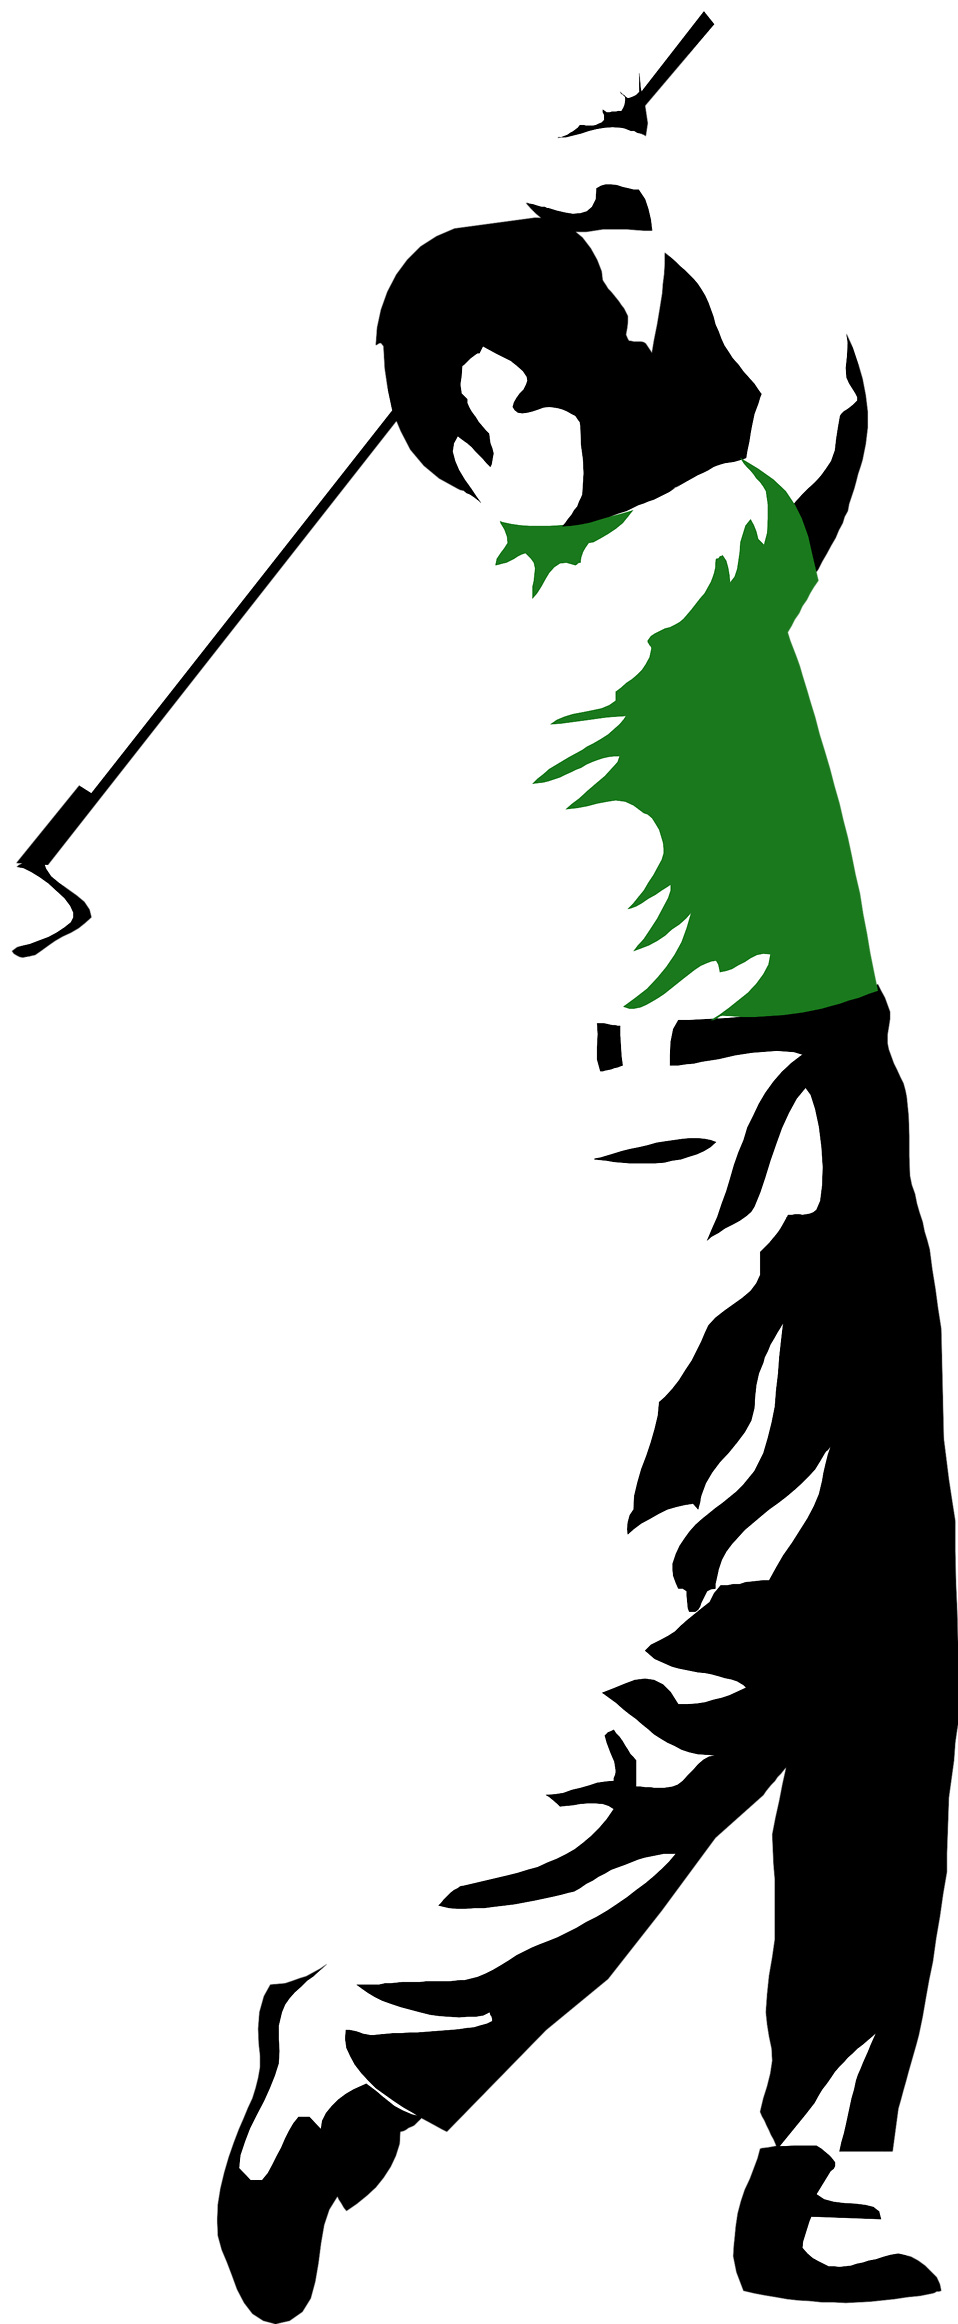 golf silhouette vector at getdrawings com free for personal use rh getdrawings com vector golf cart vector golf clubs